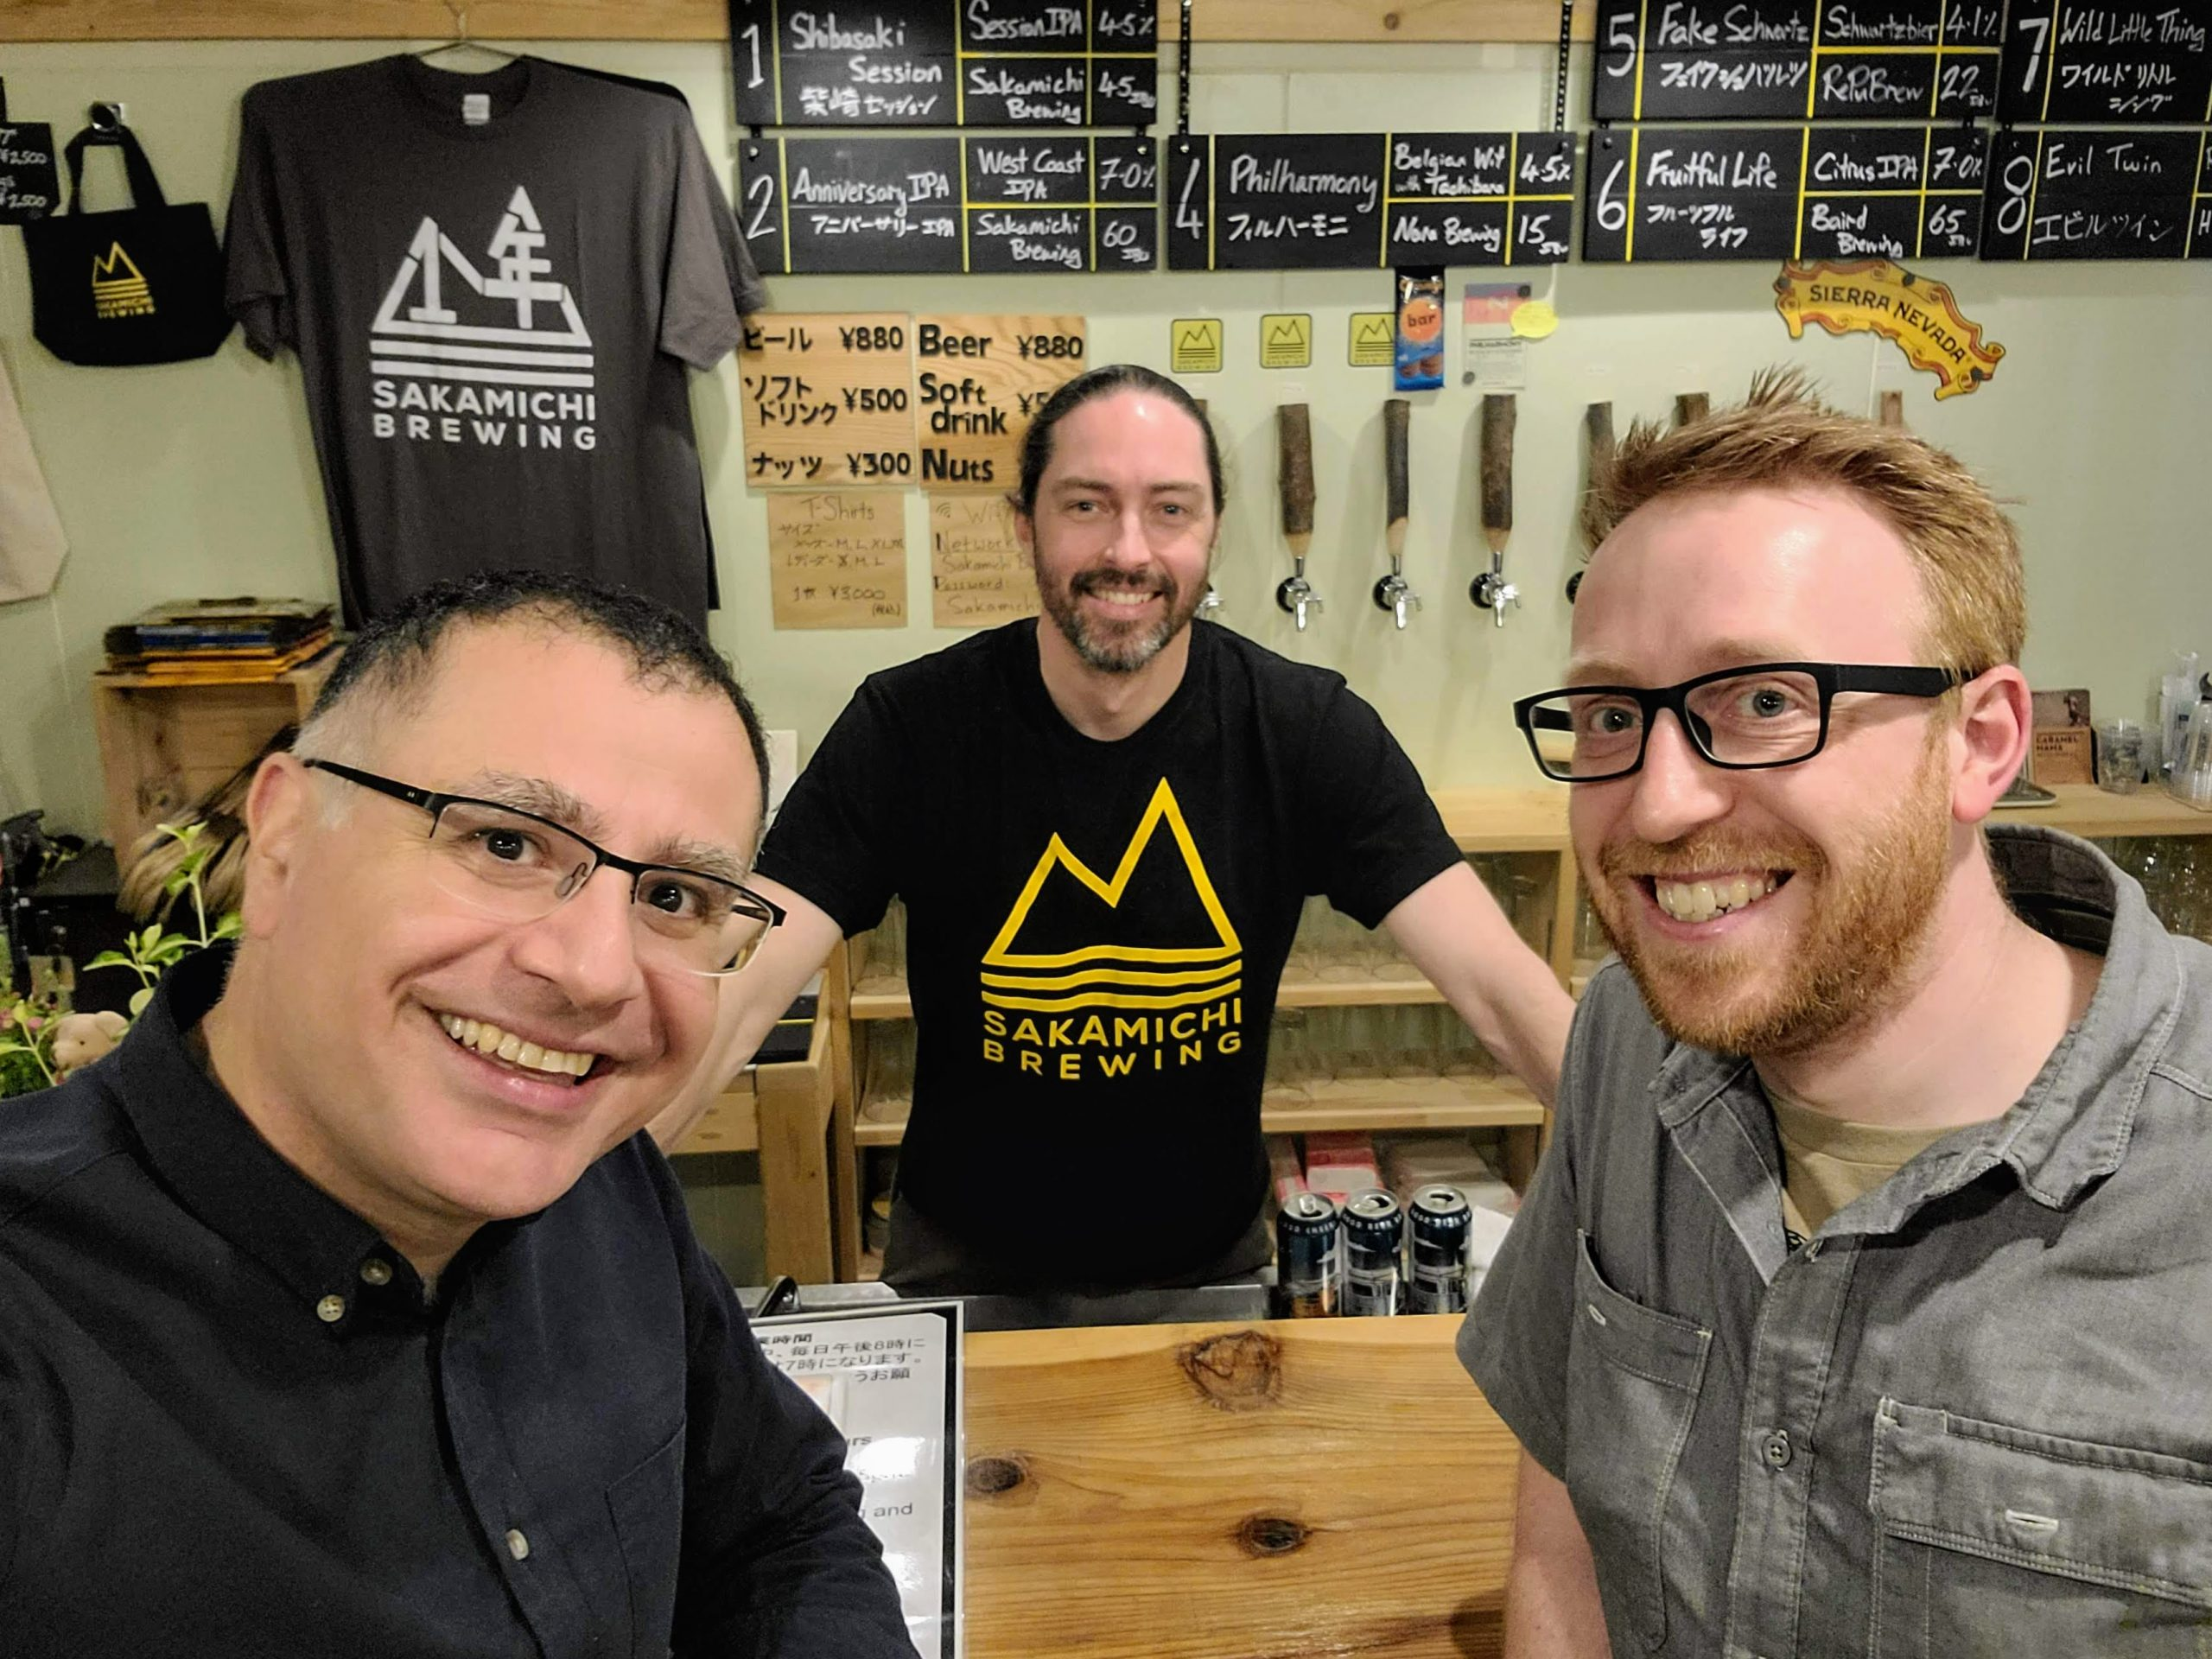 Sakamichi Nights podcast at Sakamichi Brewing: Kanpai Planet collaboration